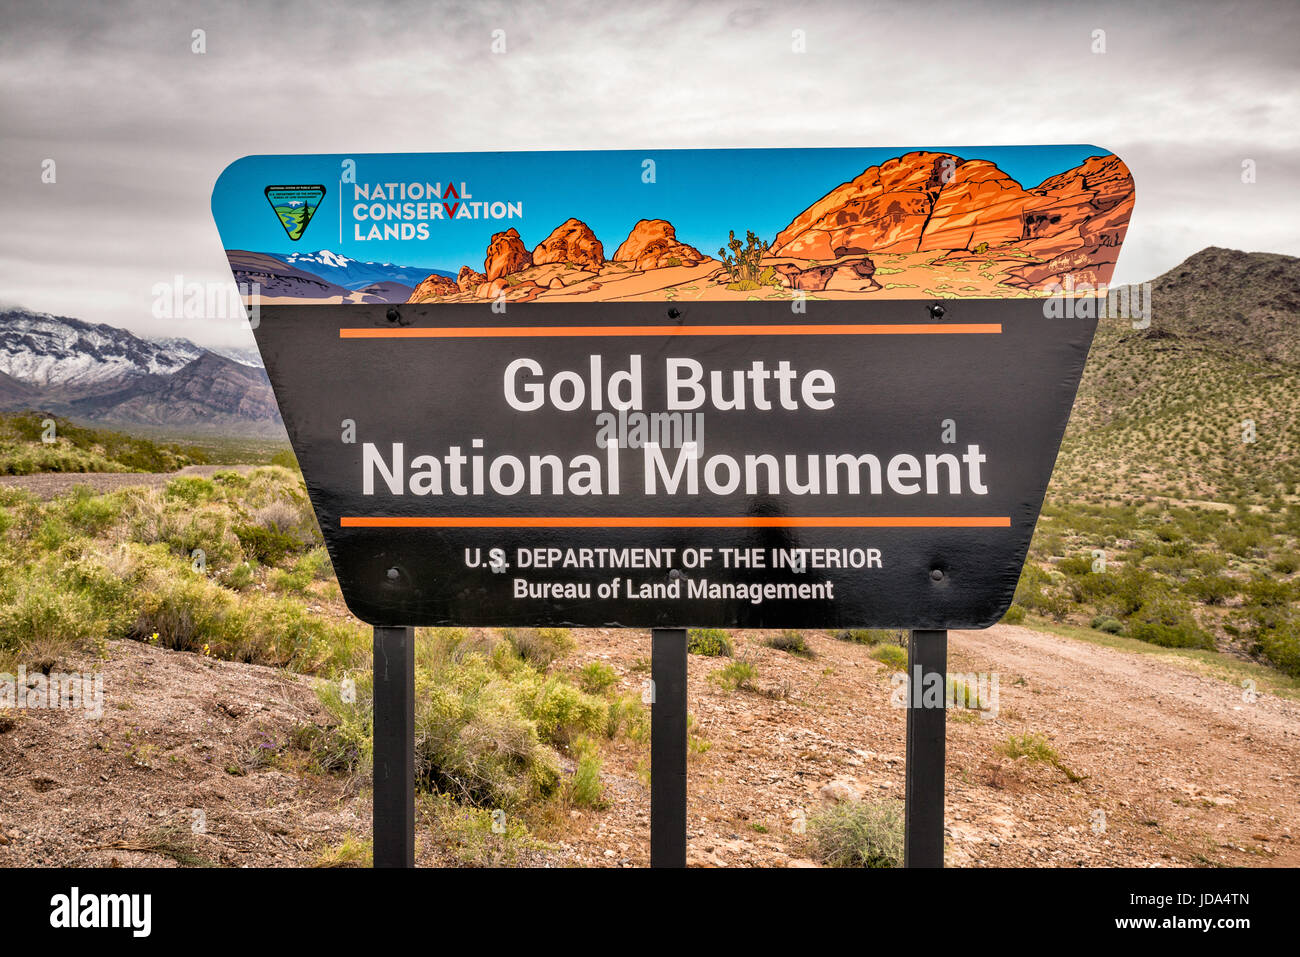 Gold Butte National Monument, sign at Gold Butte Road, Mojave Desert, near Riverside, Nevada, USA - Stock Image